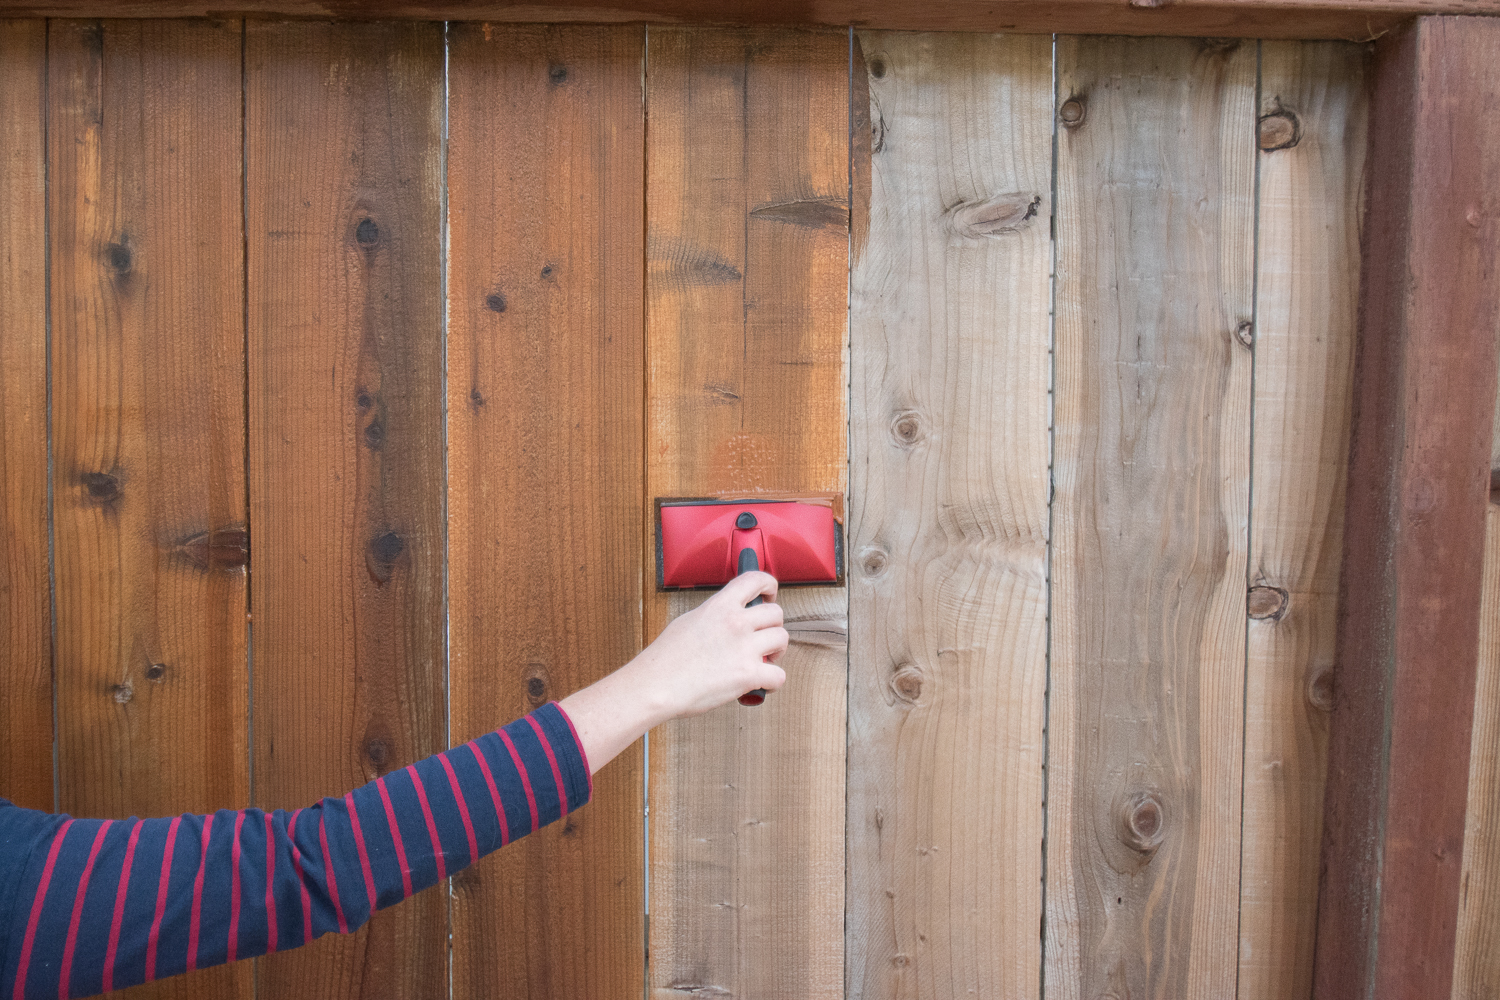 The Gold Hive How to Refresh a Fence - Powerwash-0189.jpg